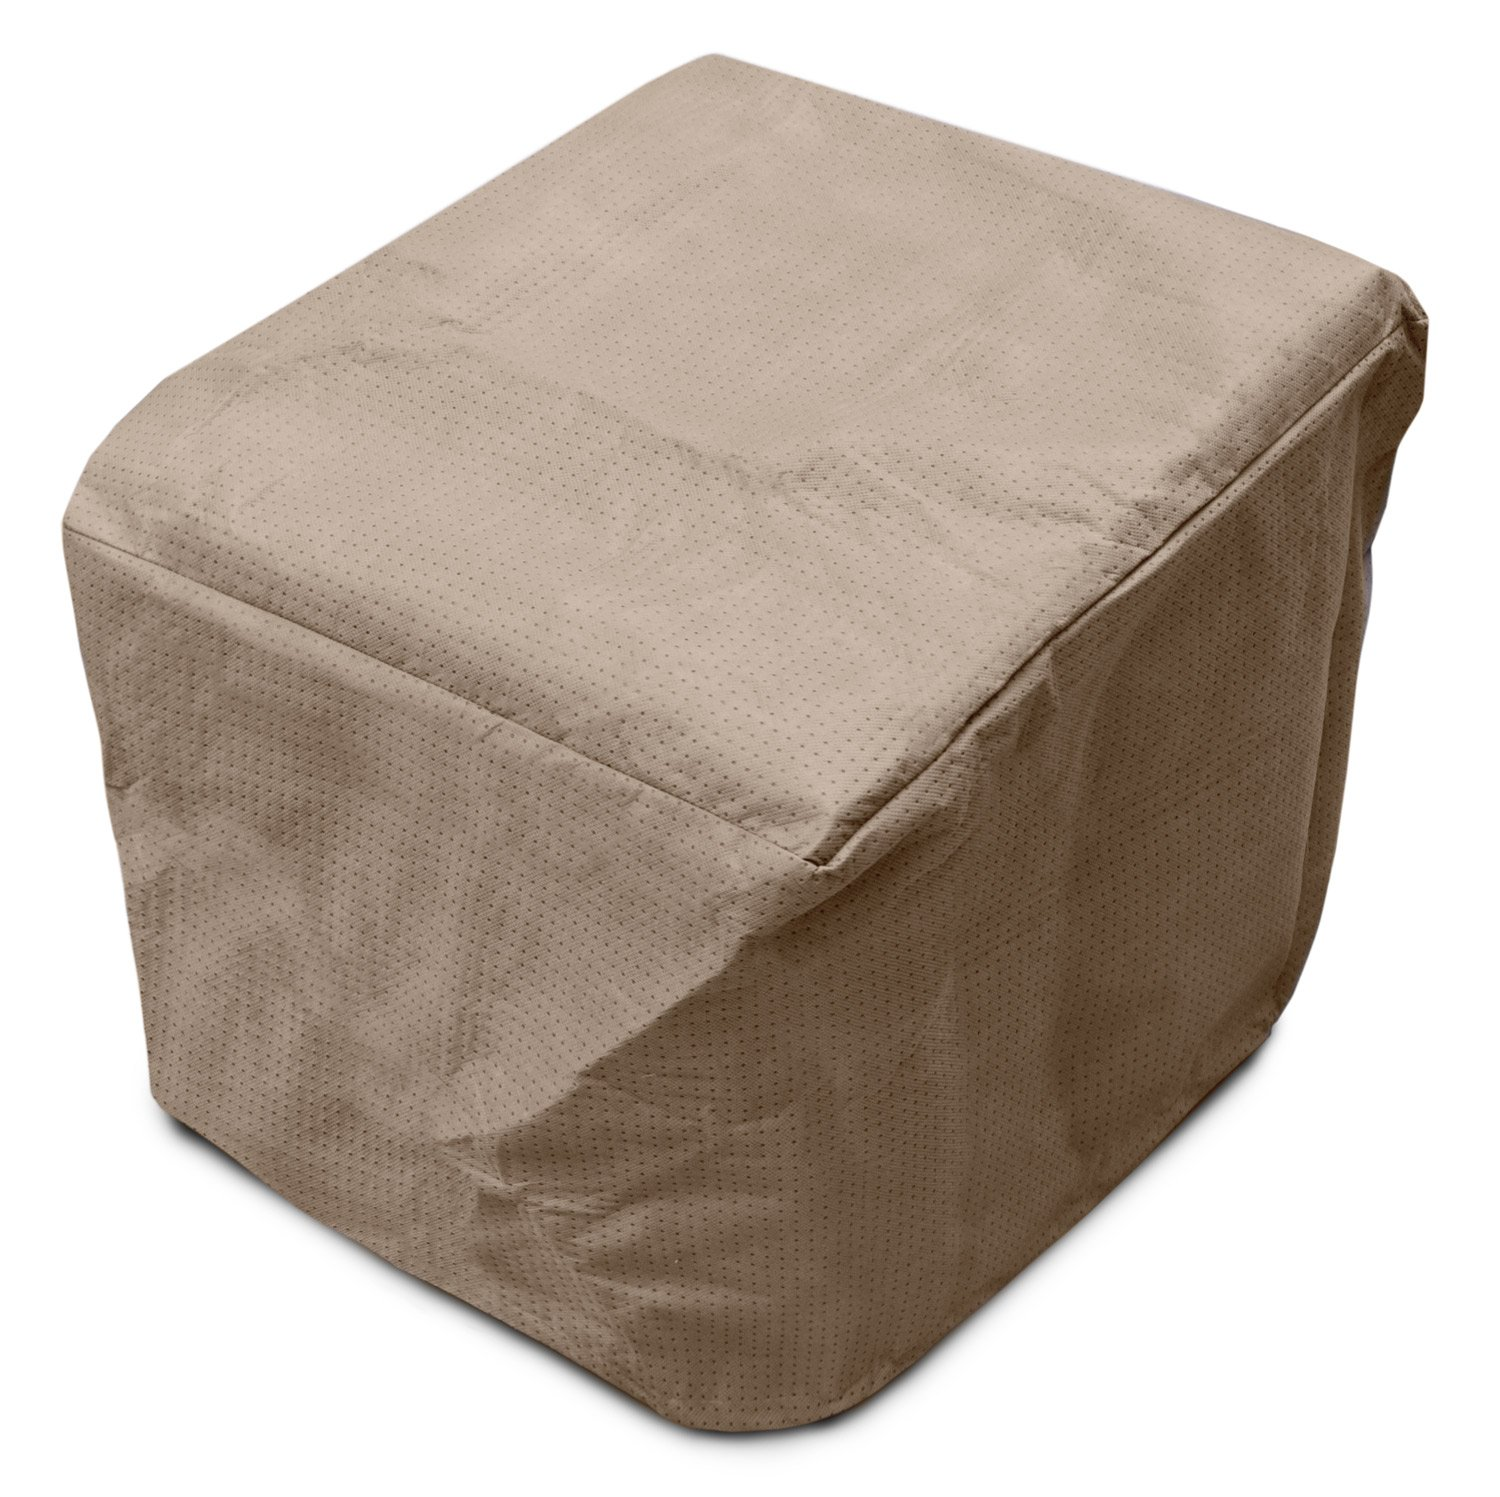 KoverRoos III 34266 40-Inch Square Table Cover, 41 by 41 by 18-Inch, Taupe